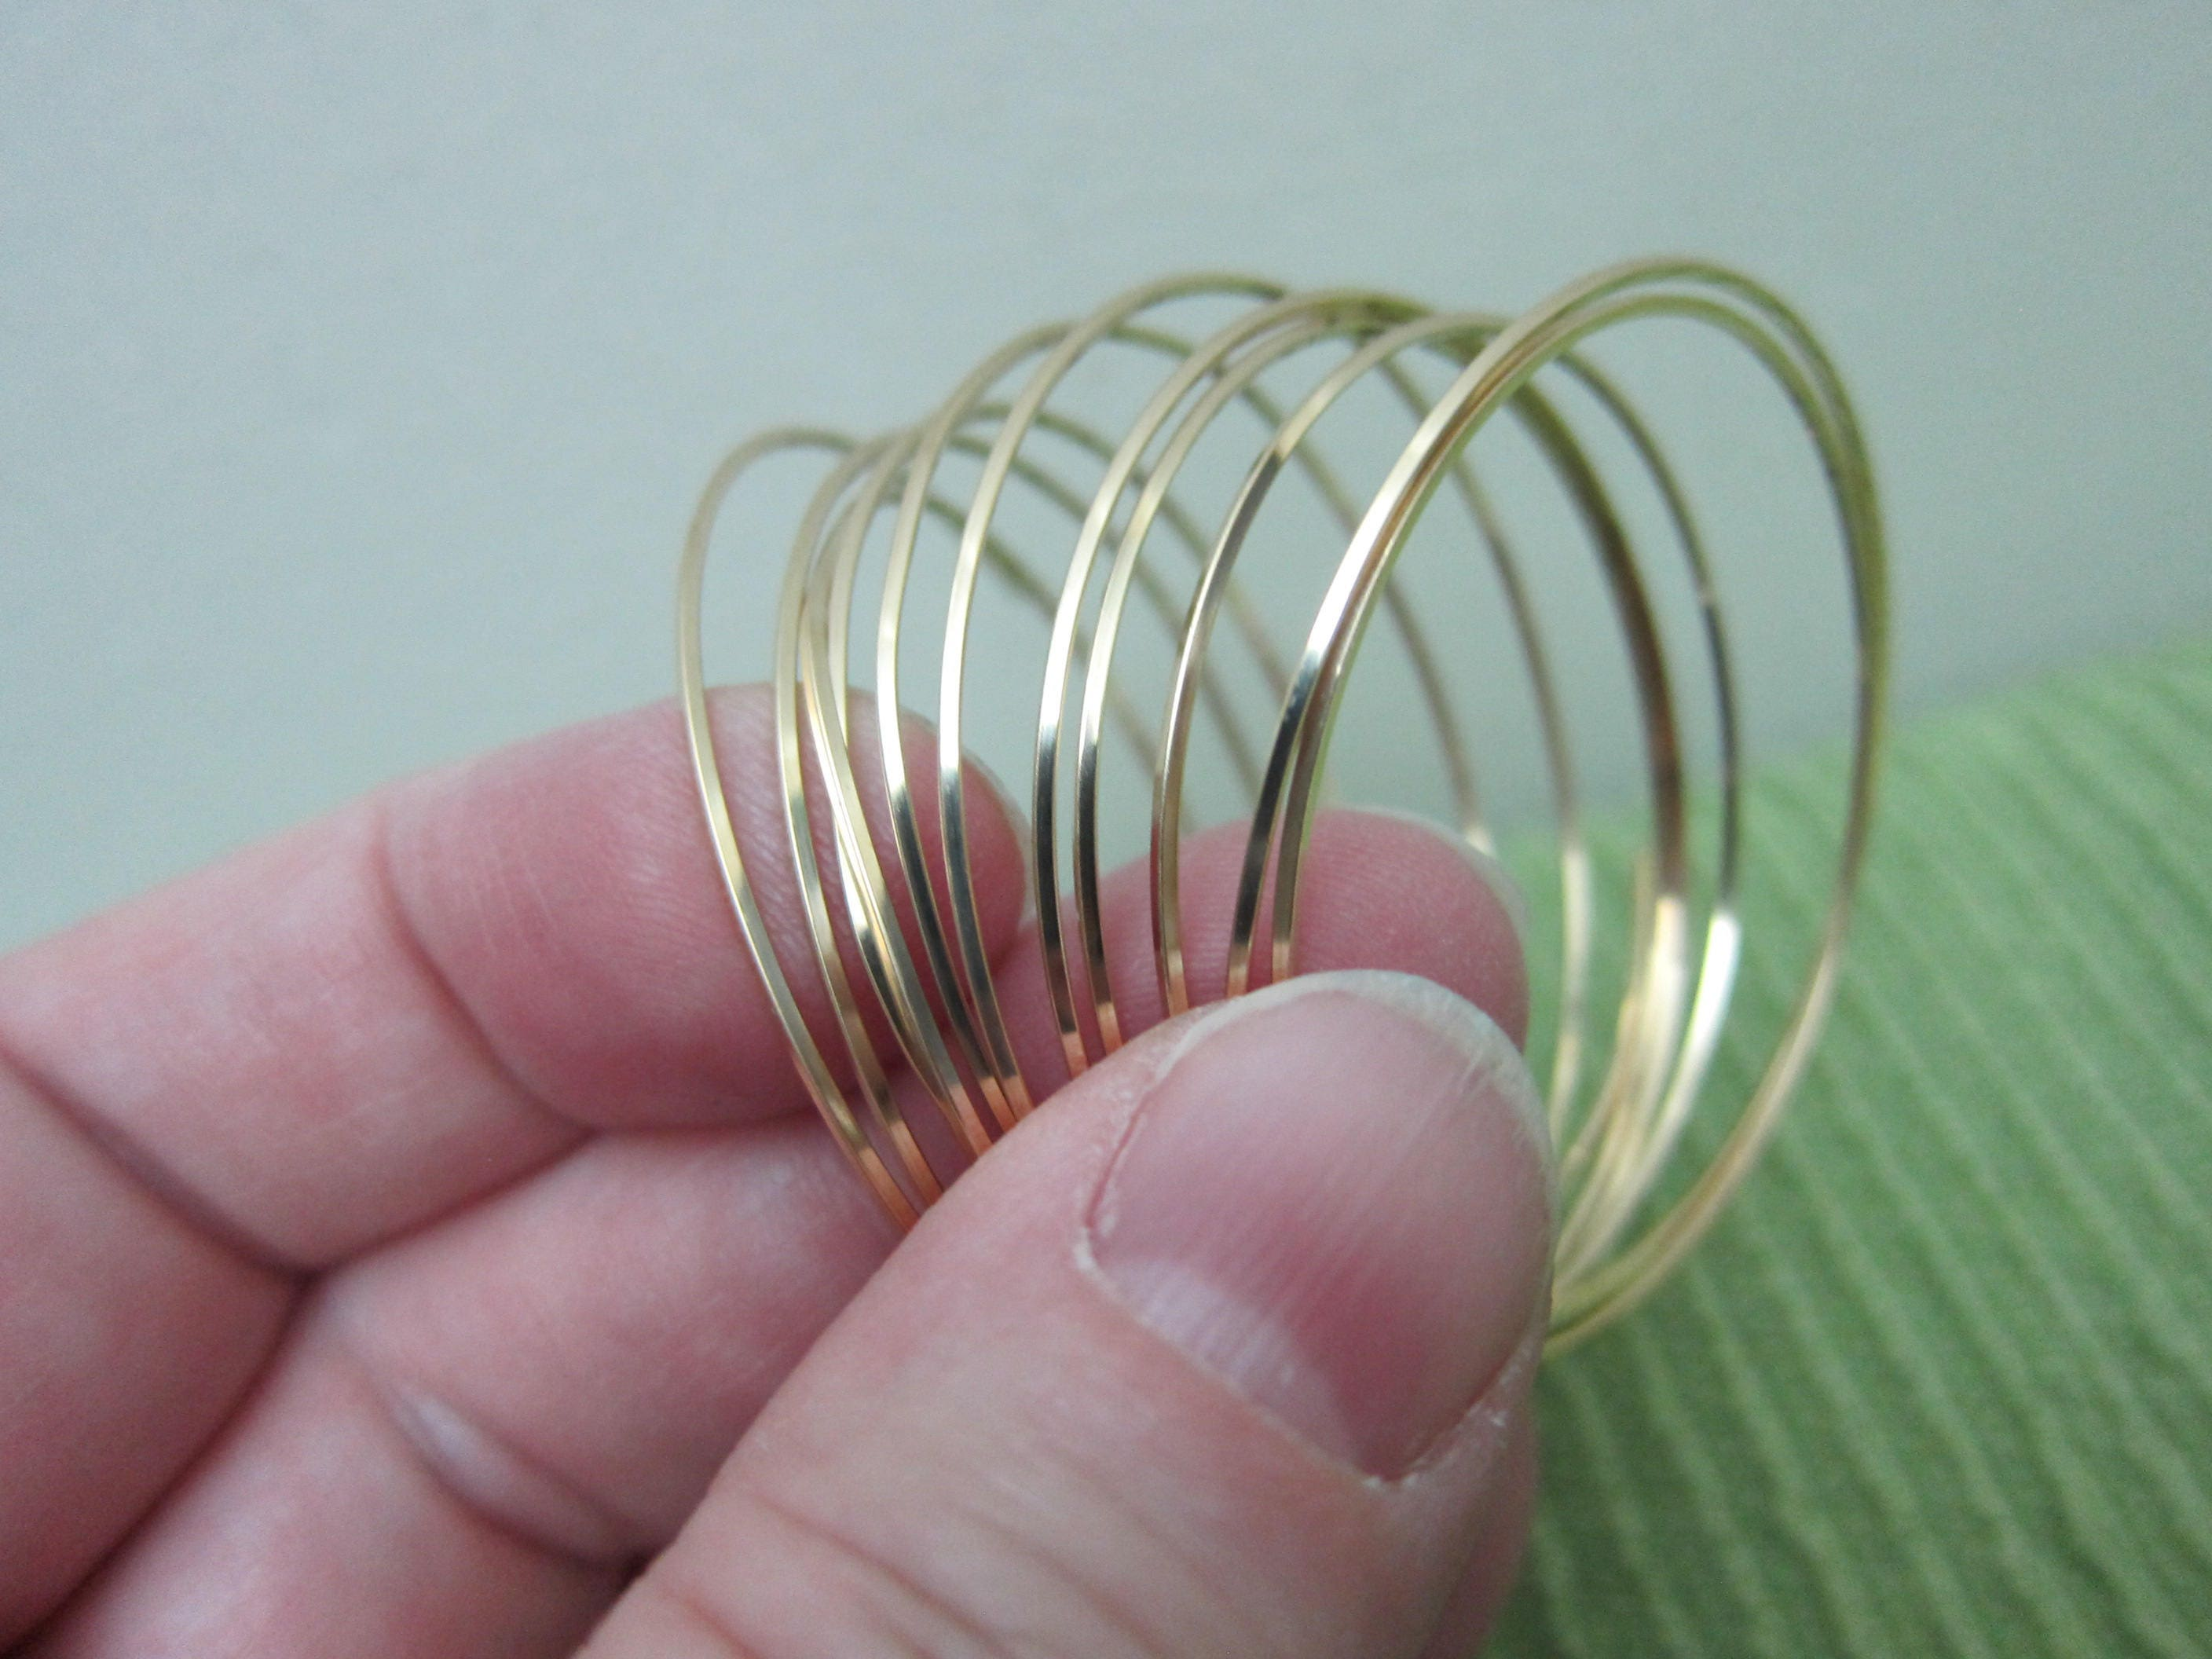 20 gauge, 12kt Gold-Filled (12/20) Wire, Half Hard, Square ...